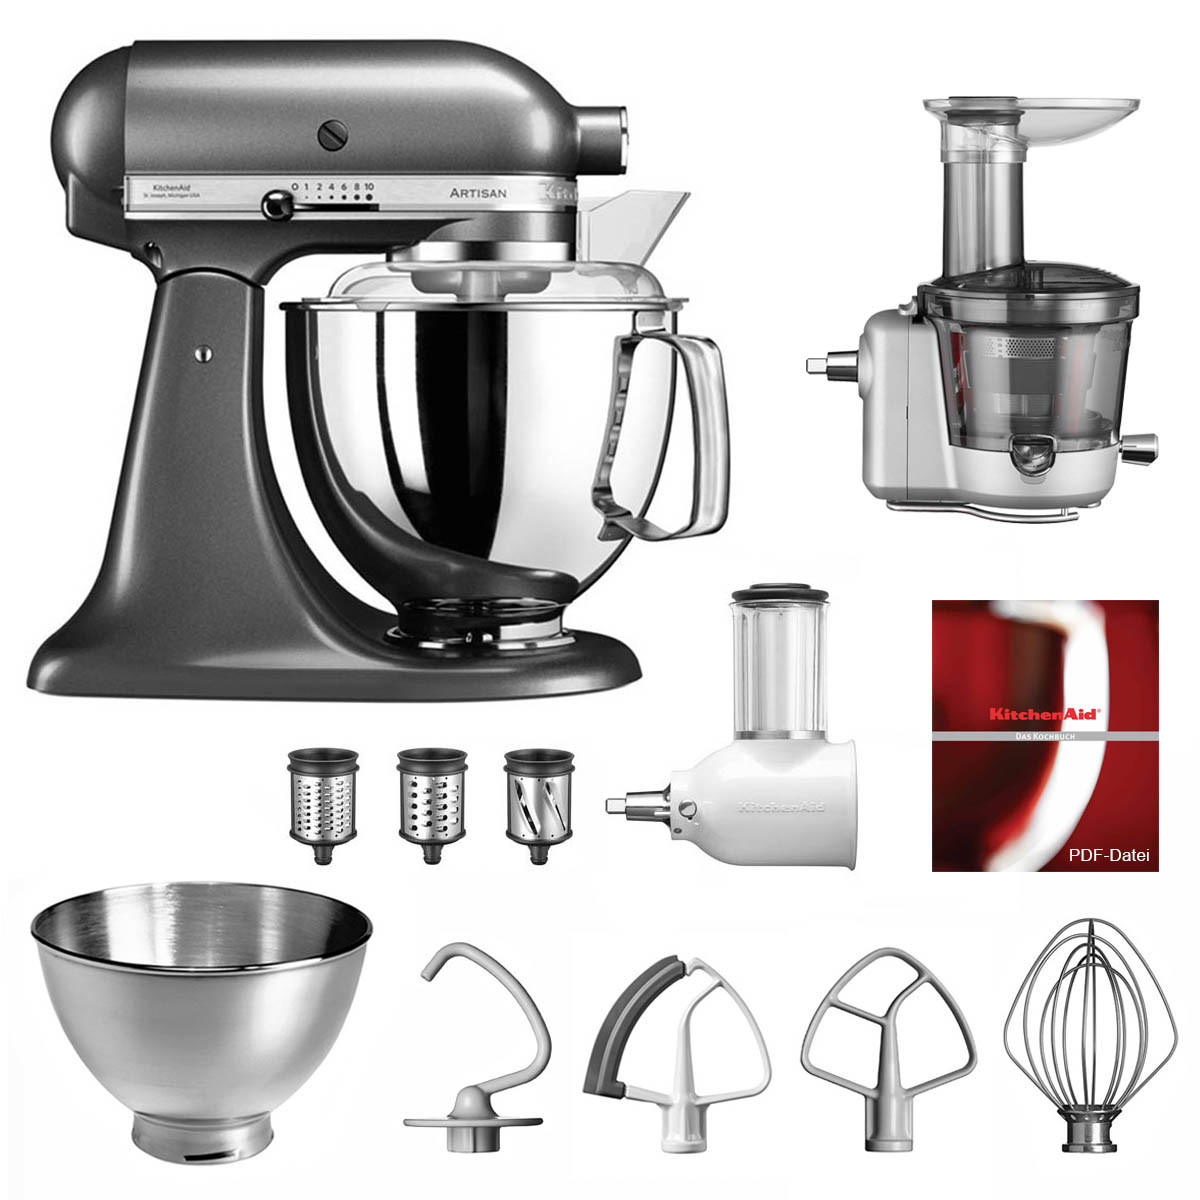 KitchenAid Küchenmaschine 175PS Entsafter Vital-Set medallion silber